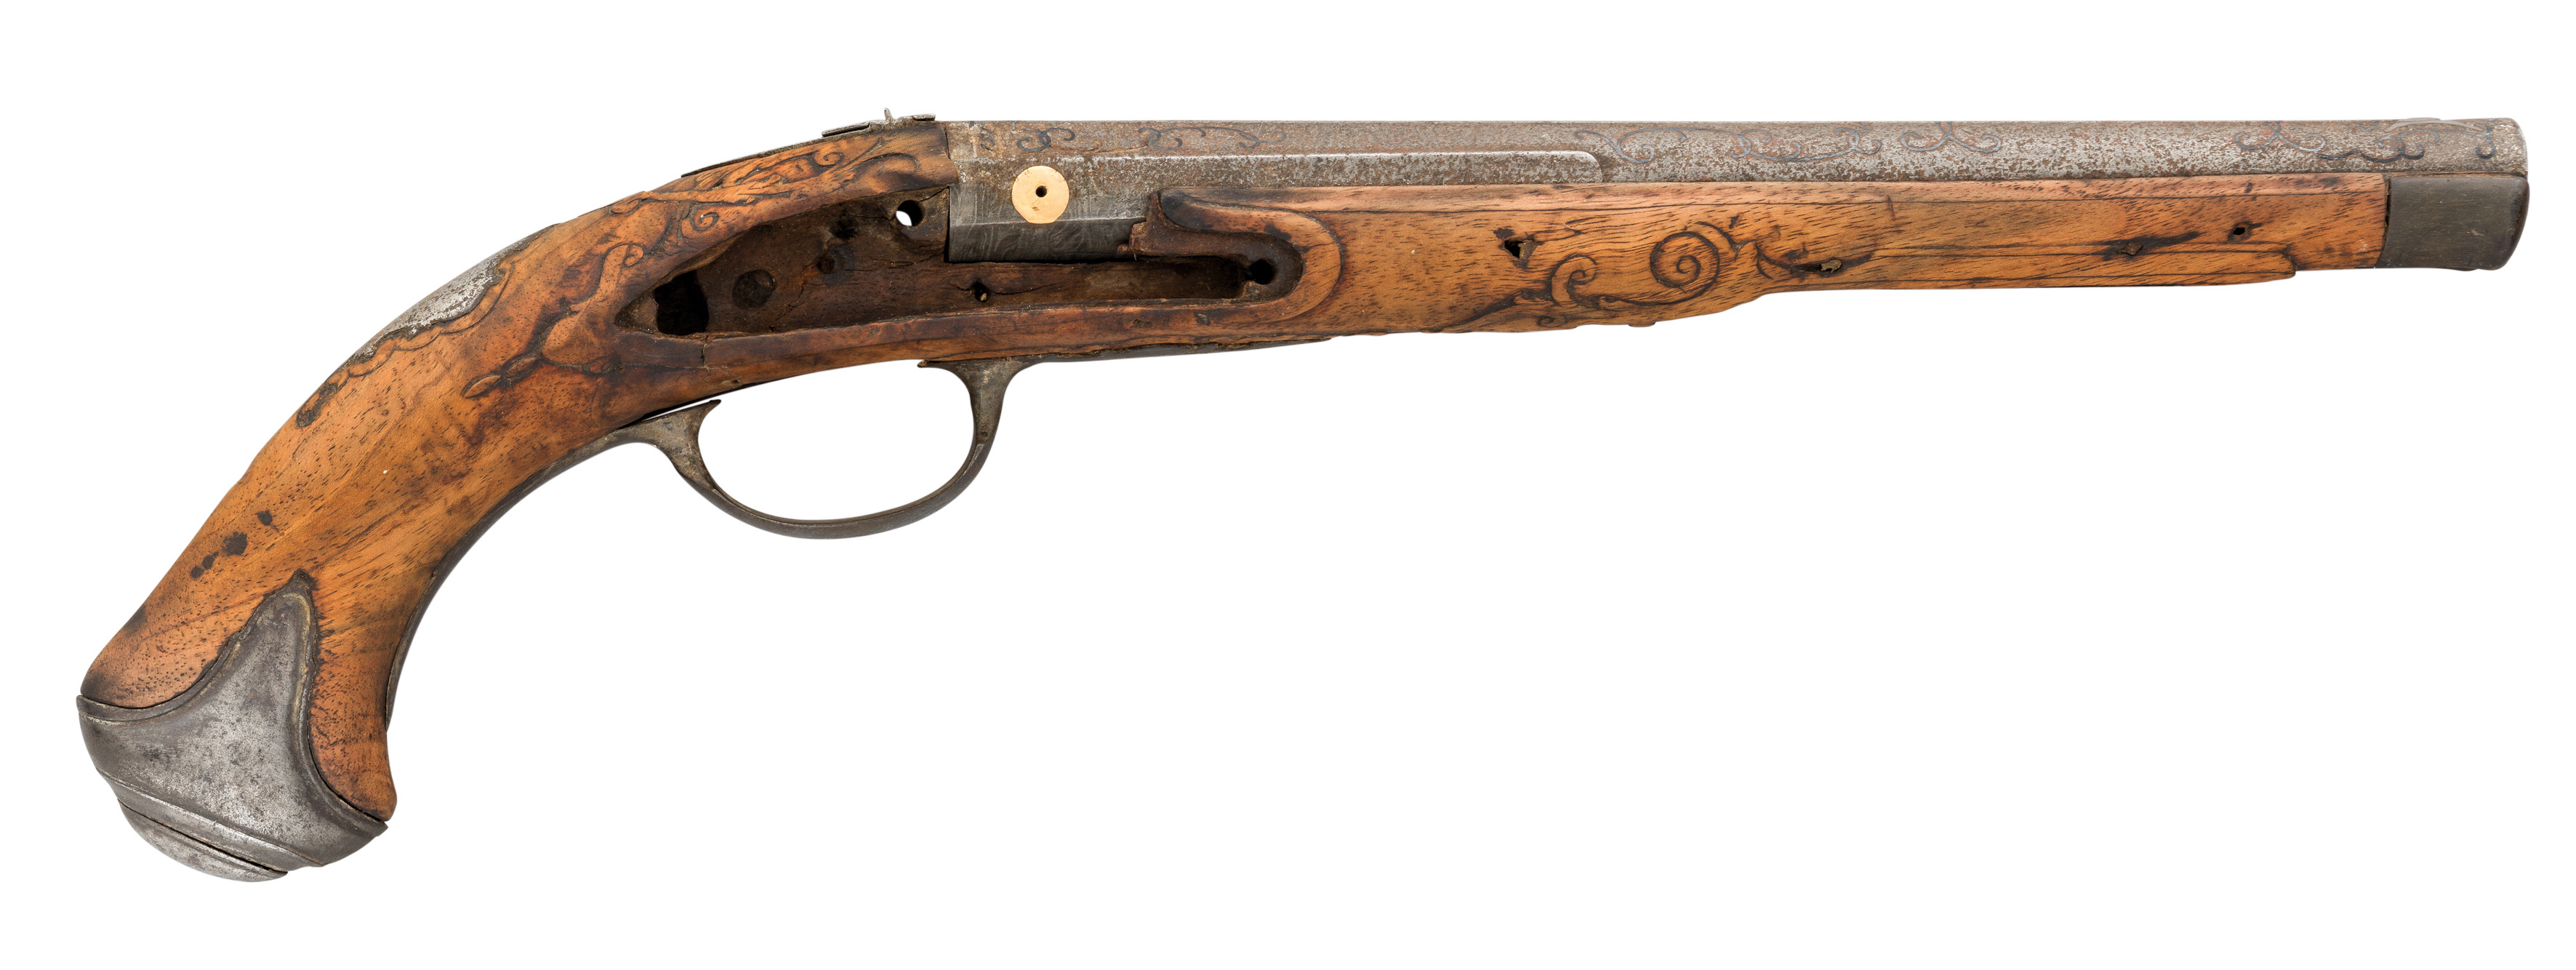 Ⓦ THE BARREL^ STOCK AND MOUNTS OF A 32 BORE SOUTH GERMAN FLINTLOCK HOLSTER PISTOL BY I. CHRISTOPH